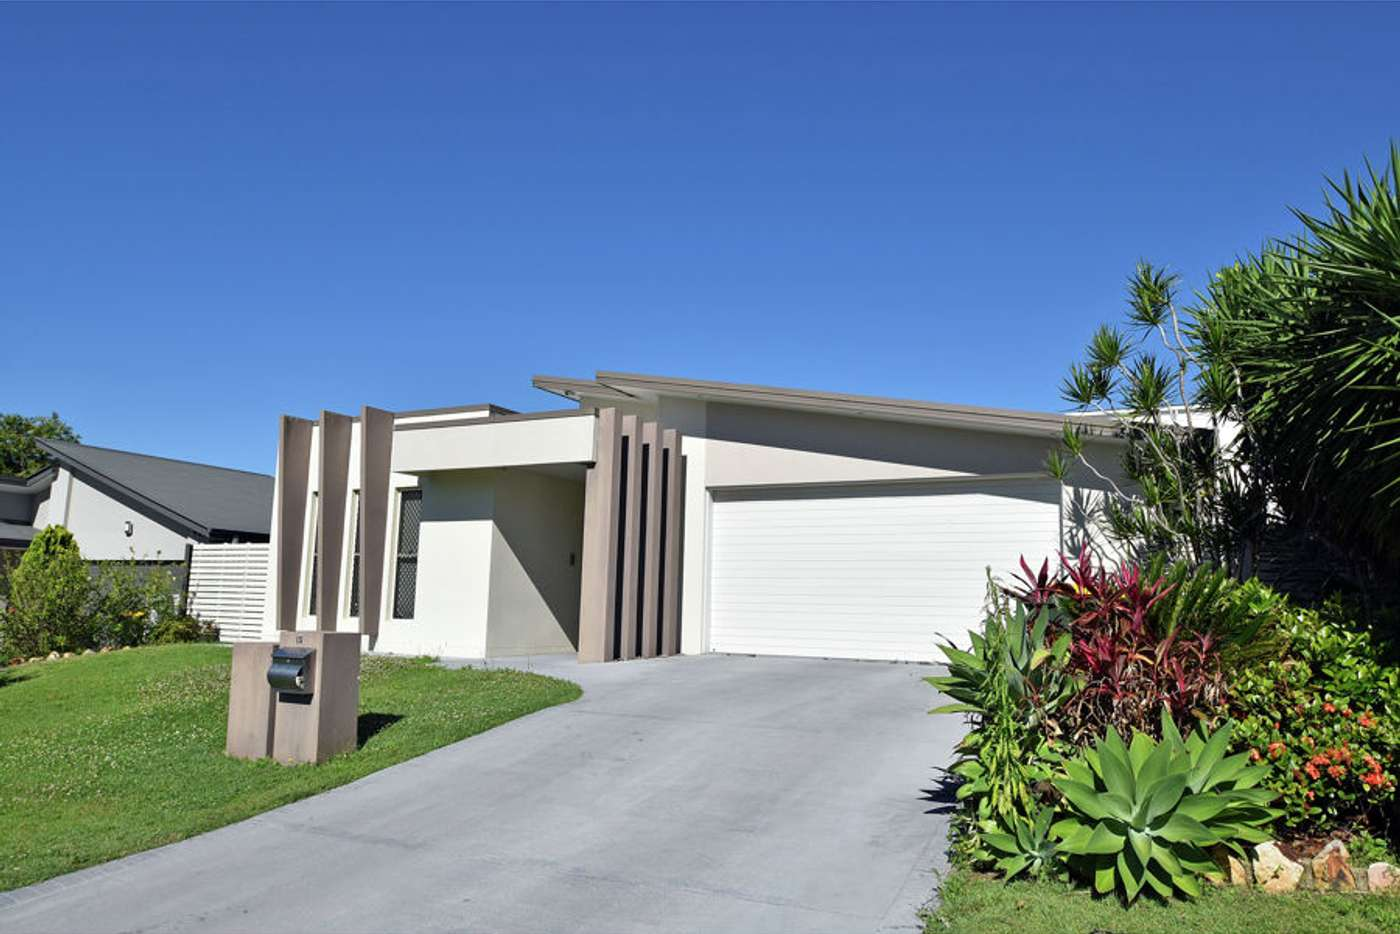 Main view of Homely house listing, 15 Bowers street, Eight Mile Plains QLD 4113